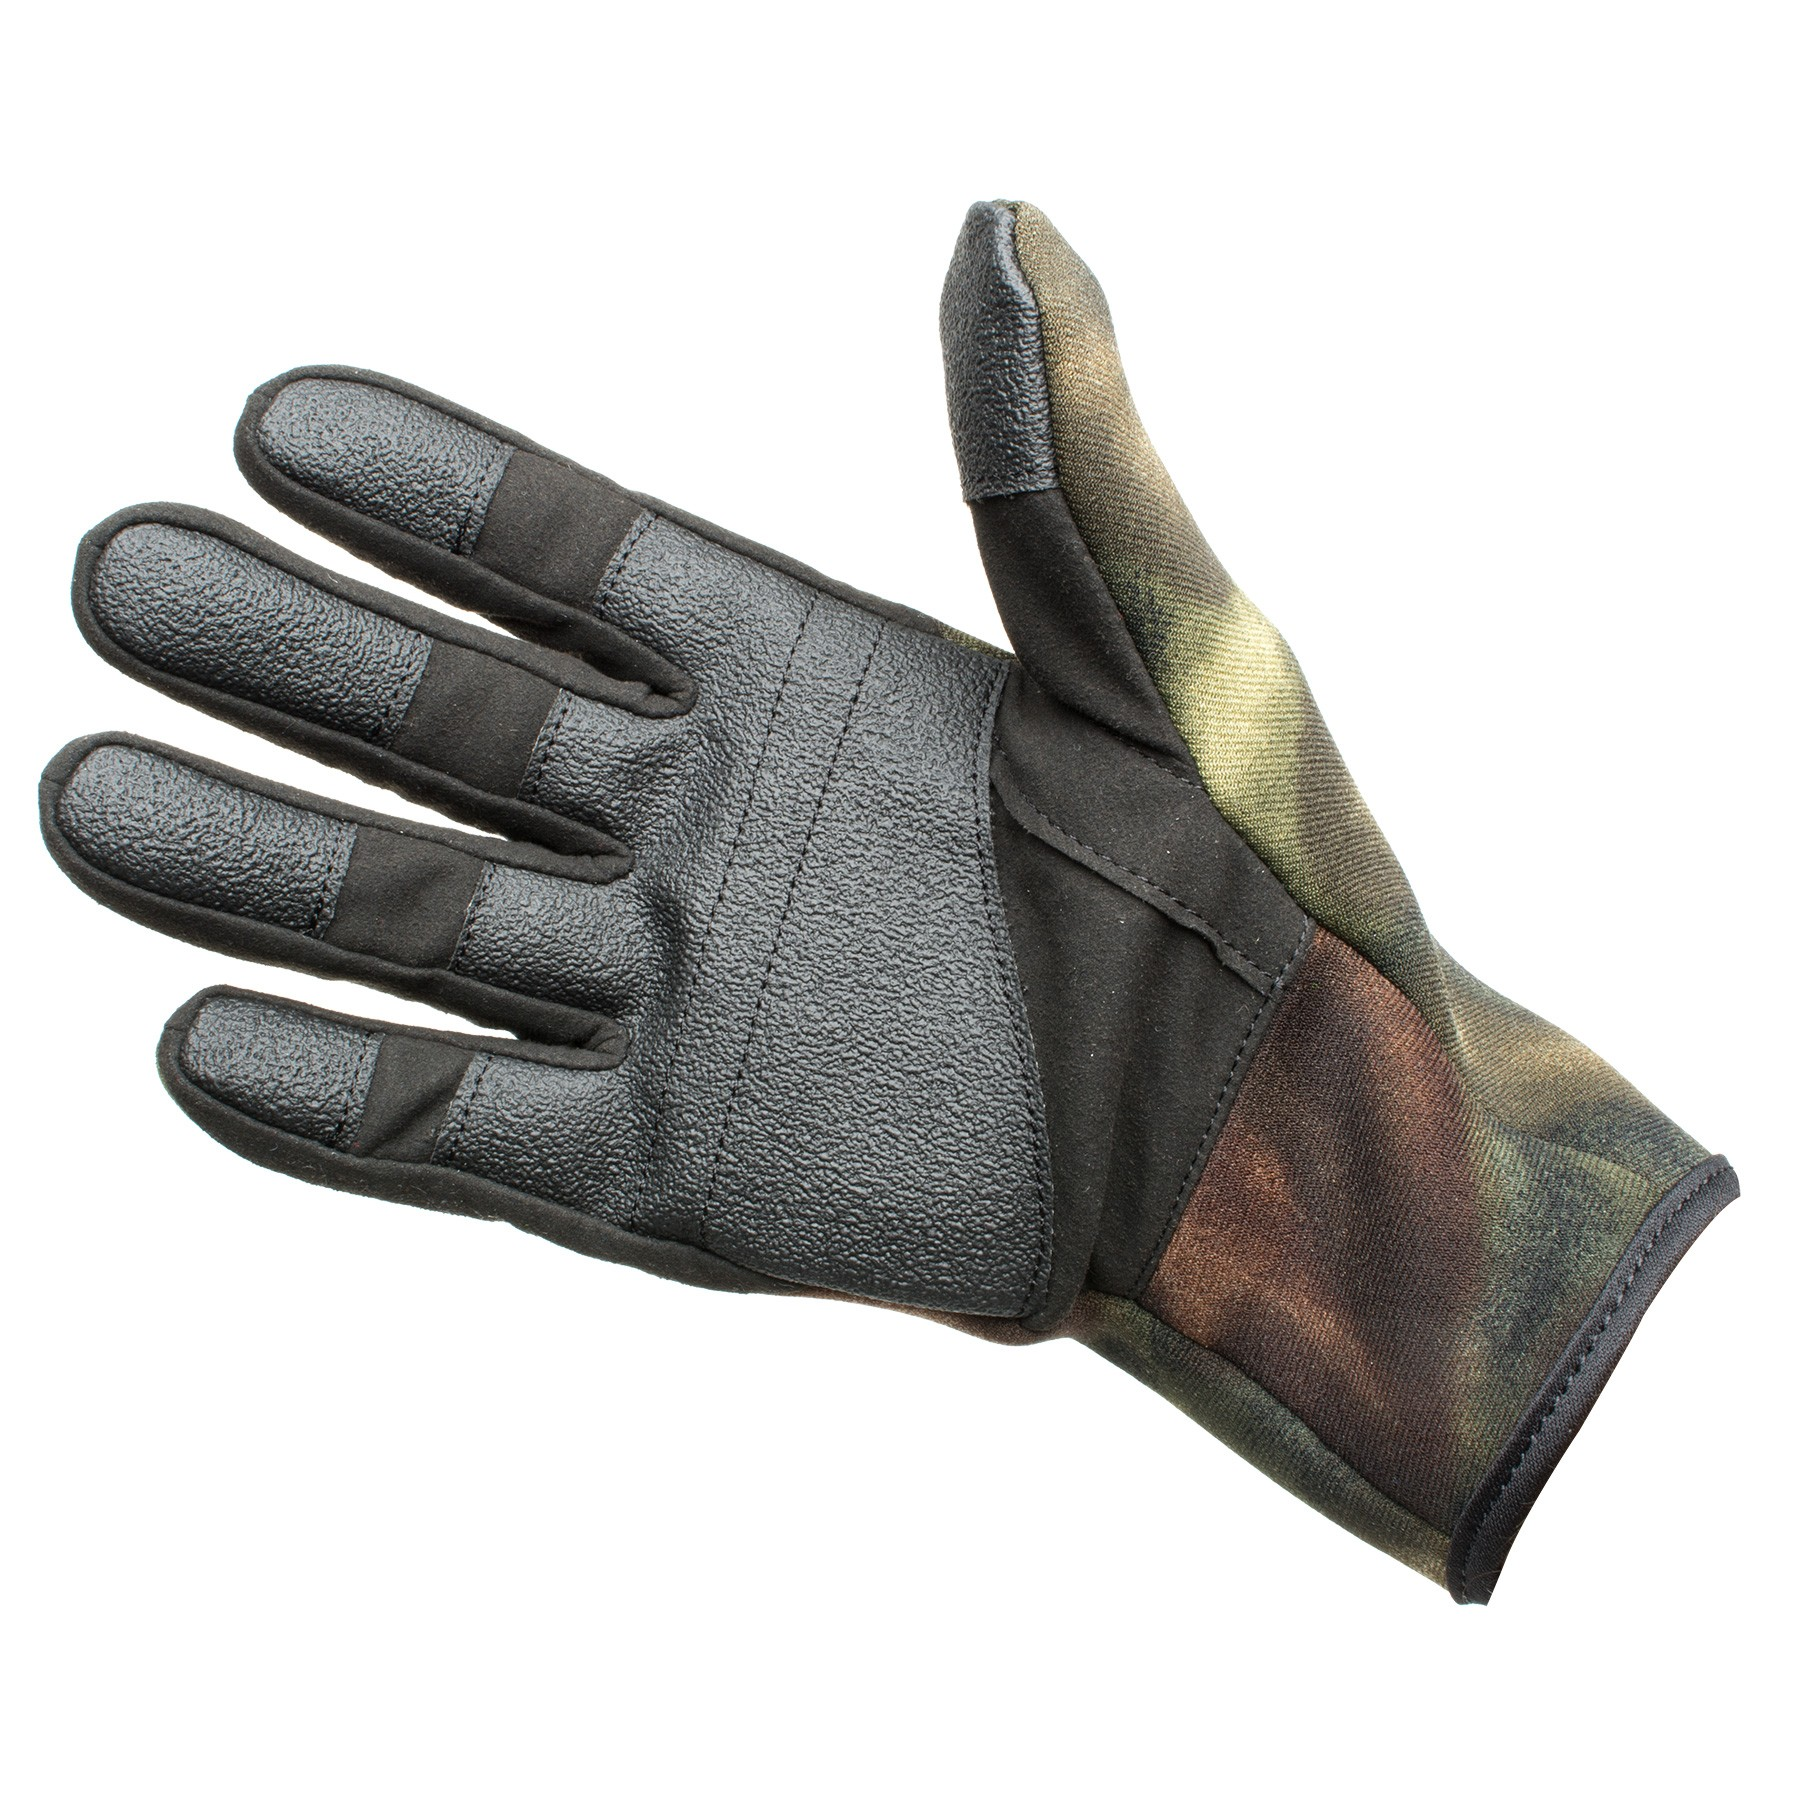 HAMMERHEAD TUFF GRAB 2MM AMARRA GLOVE CAMO PALM